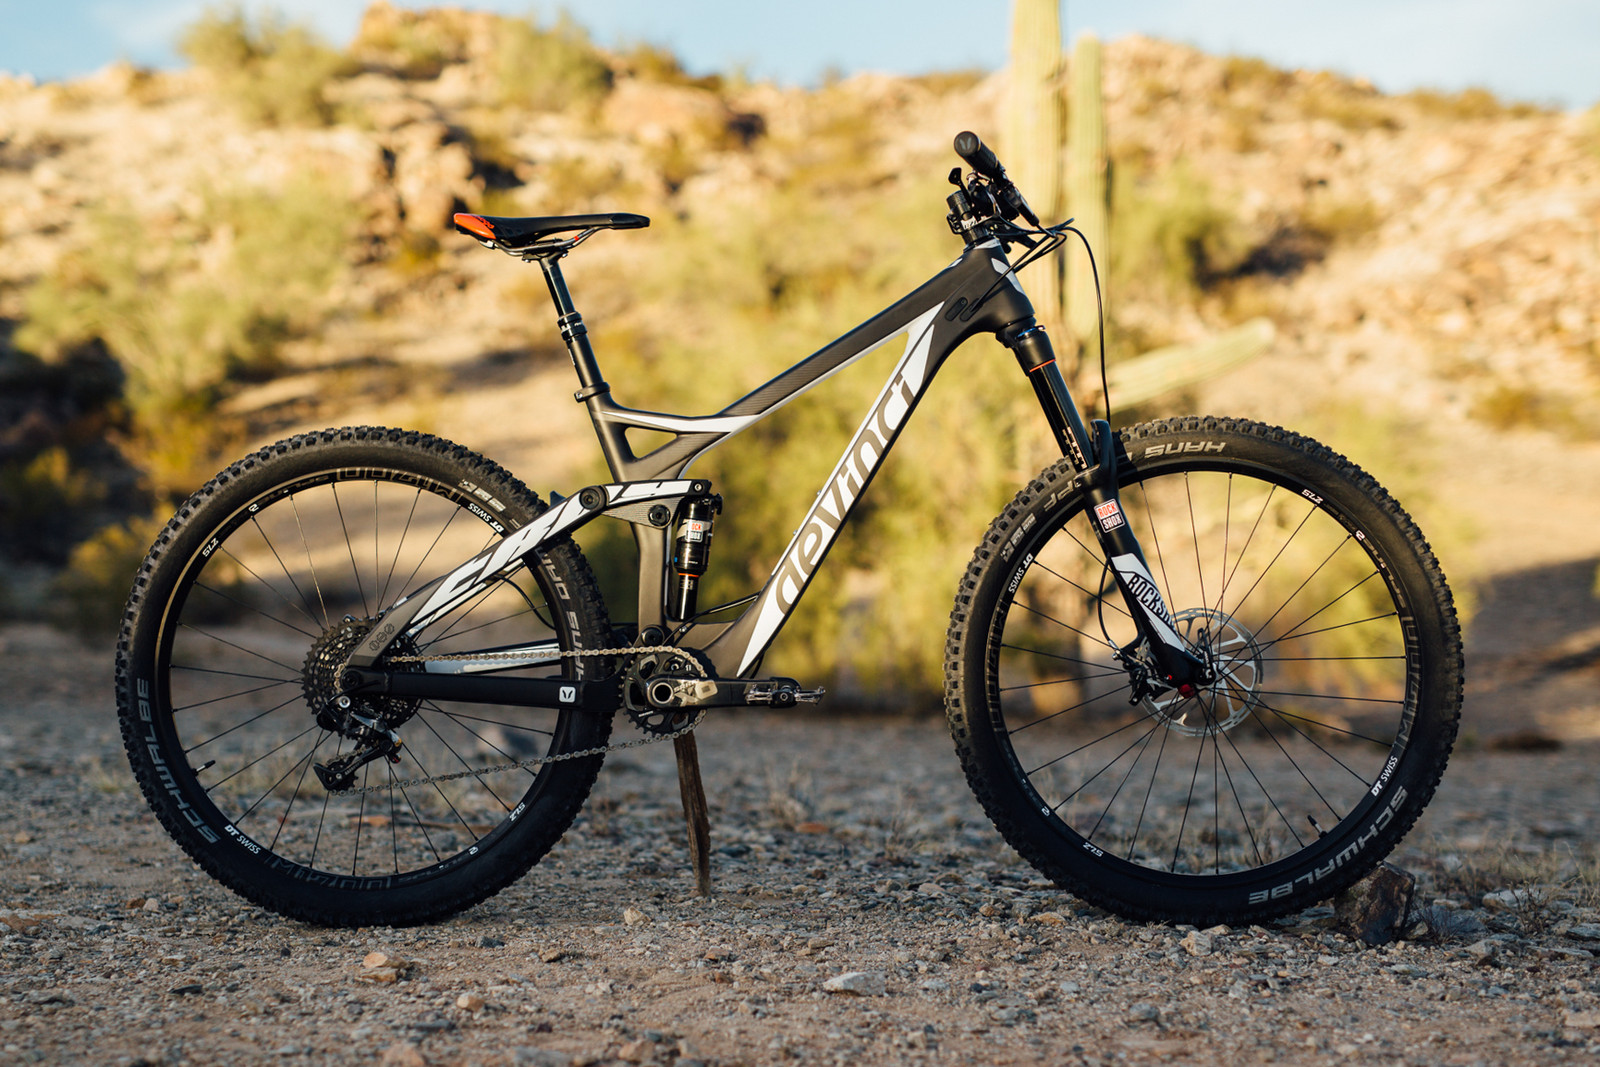 2016 Devinci Troy Carbon RR - 17 Bikes Tested - 2016 Vital MTB Test Sessions - Mountain Biking Pictures - Vital MTB